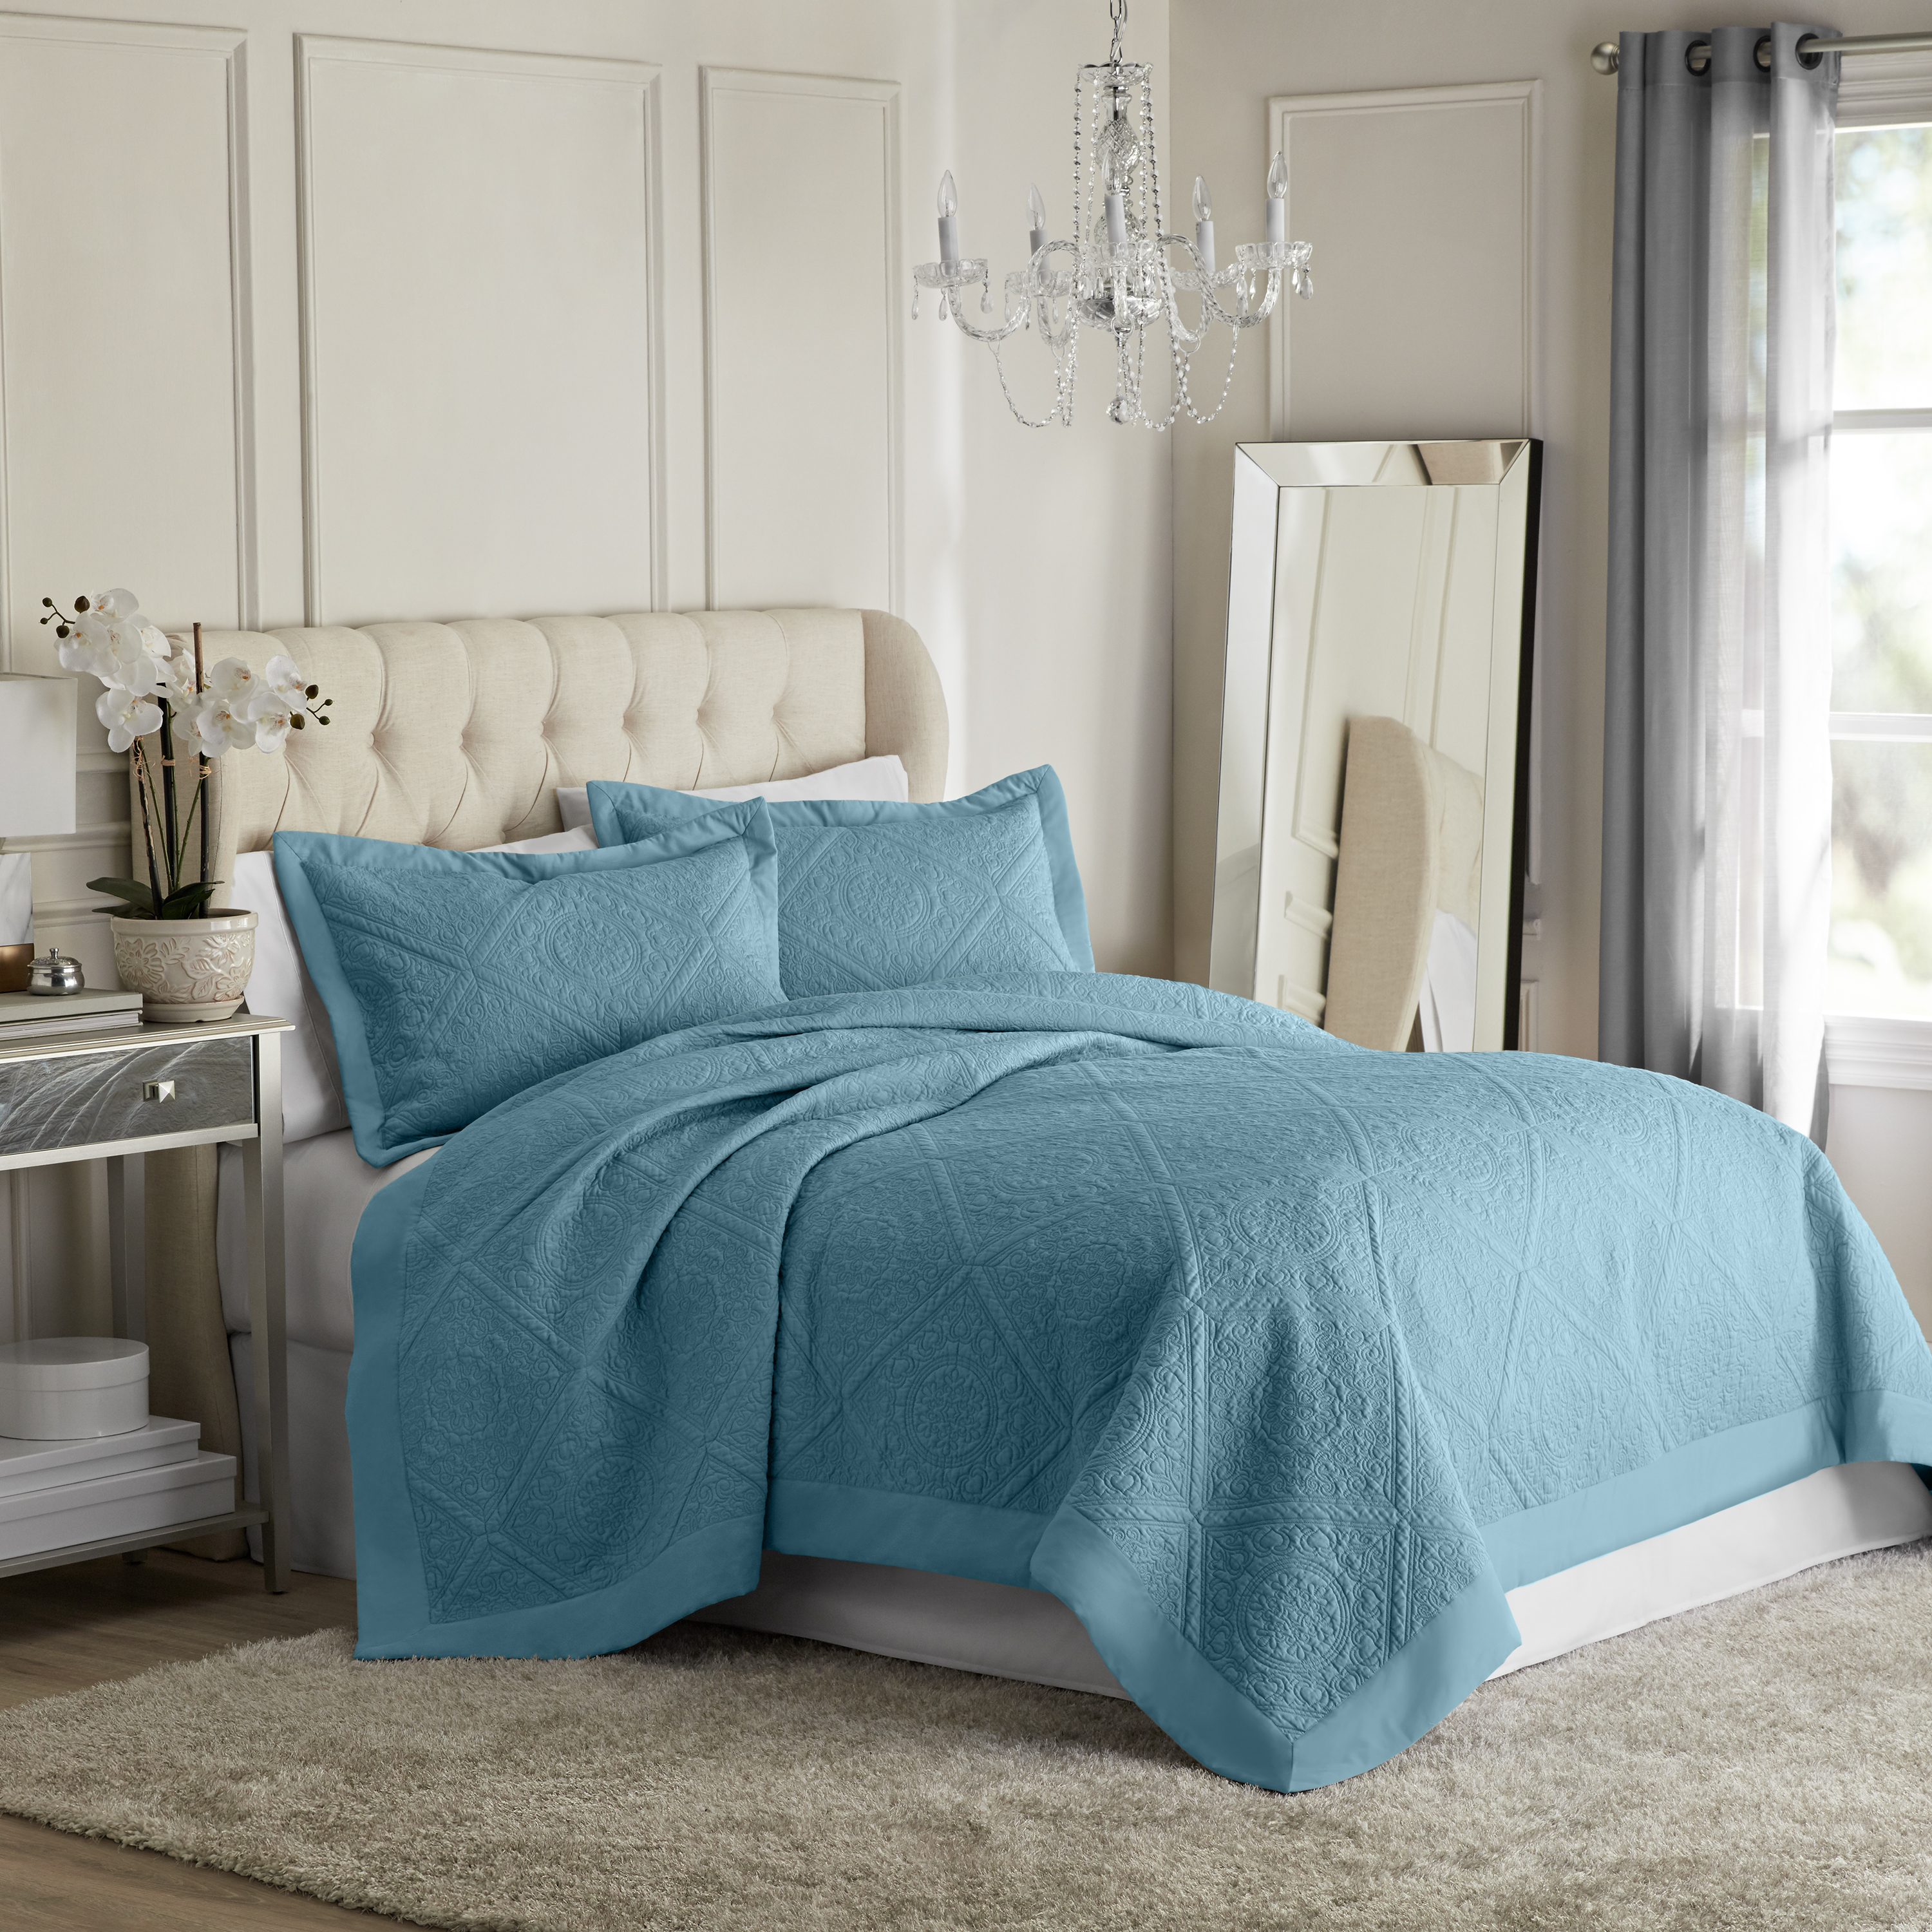 Hotel Style Chateaux Quilted Coverlet, 3 Piece Set